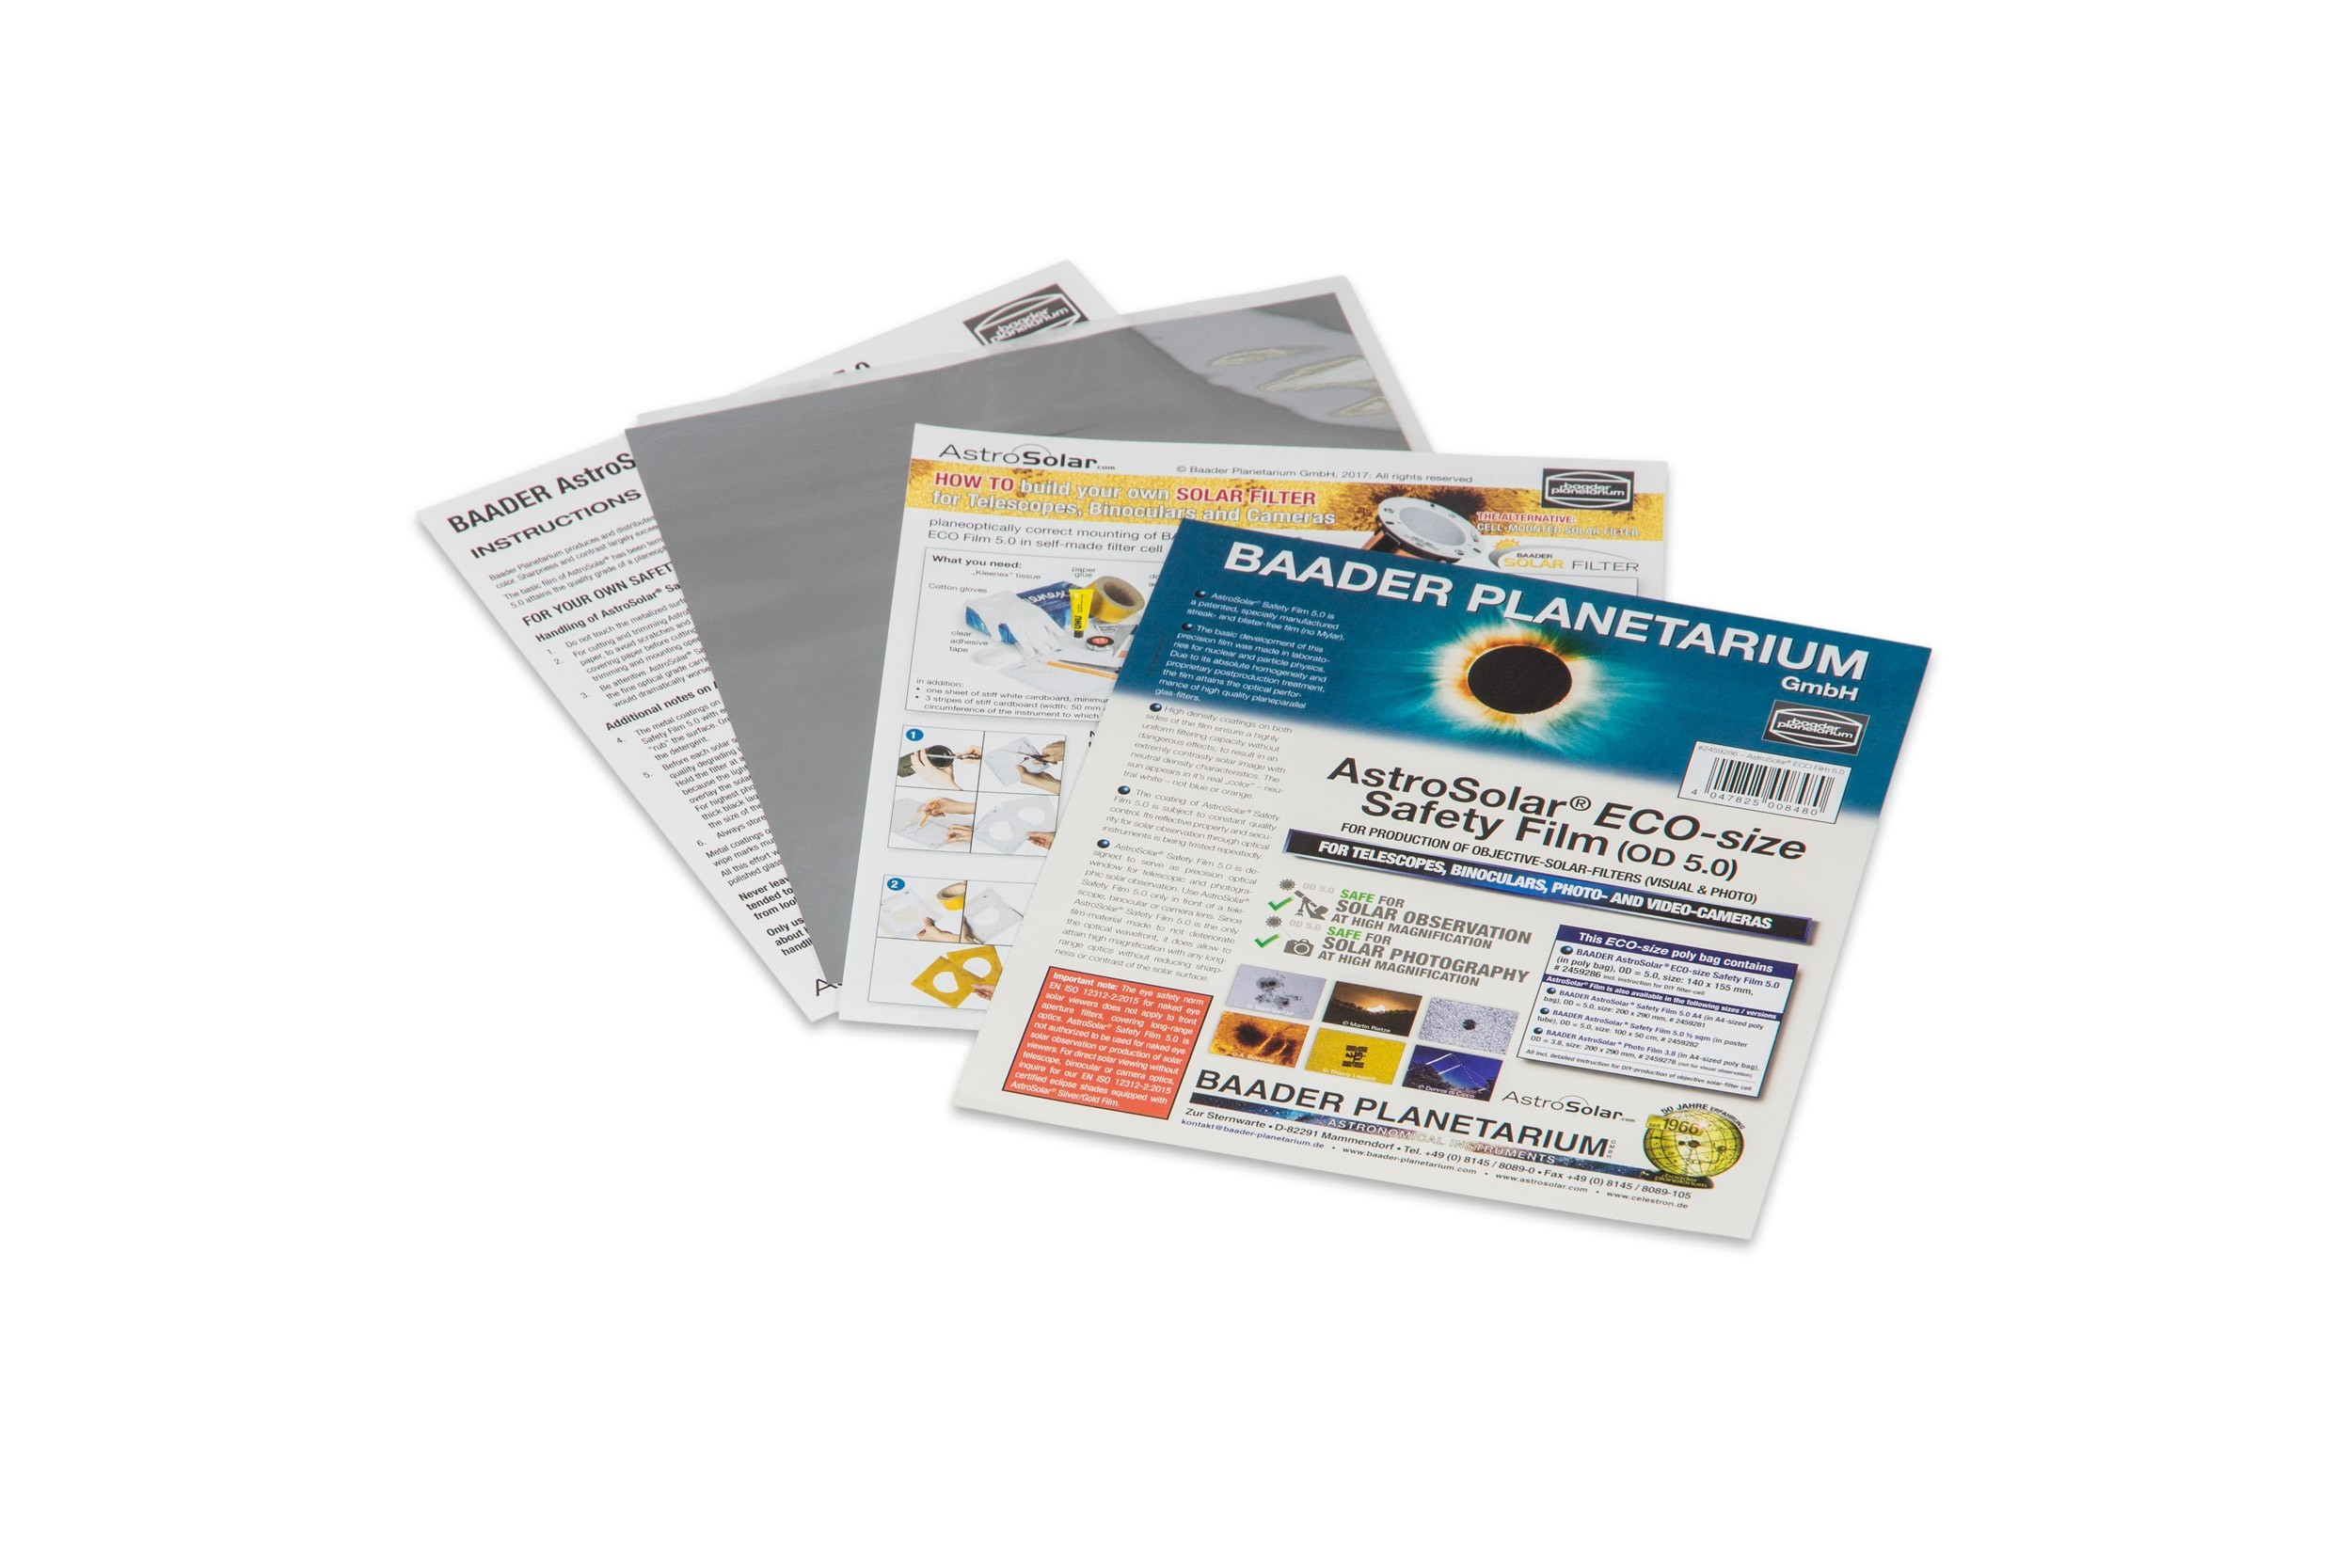 AstroSolar ECO-size Safety Film 5.0 OD, size 140x155mm, incl. DIY instructions and template